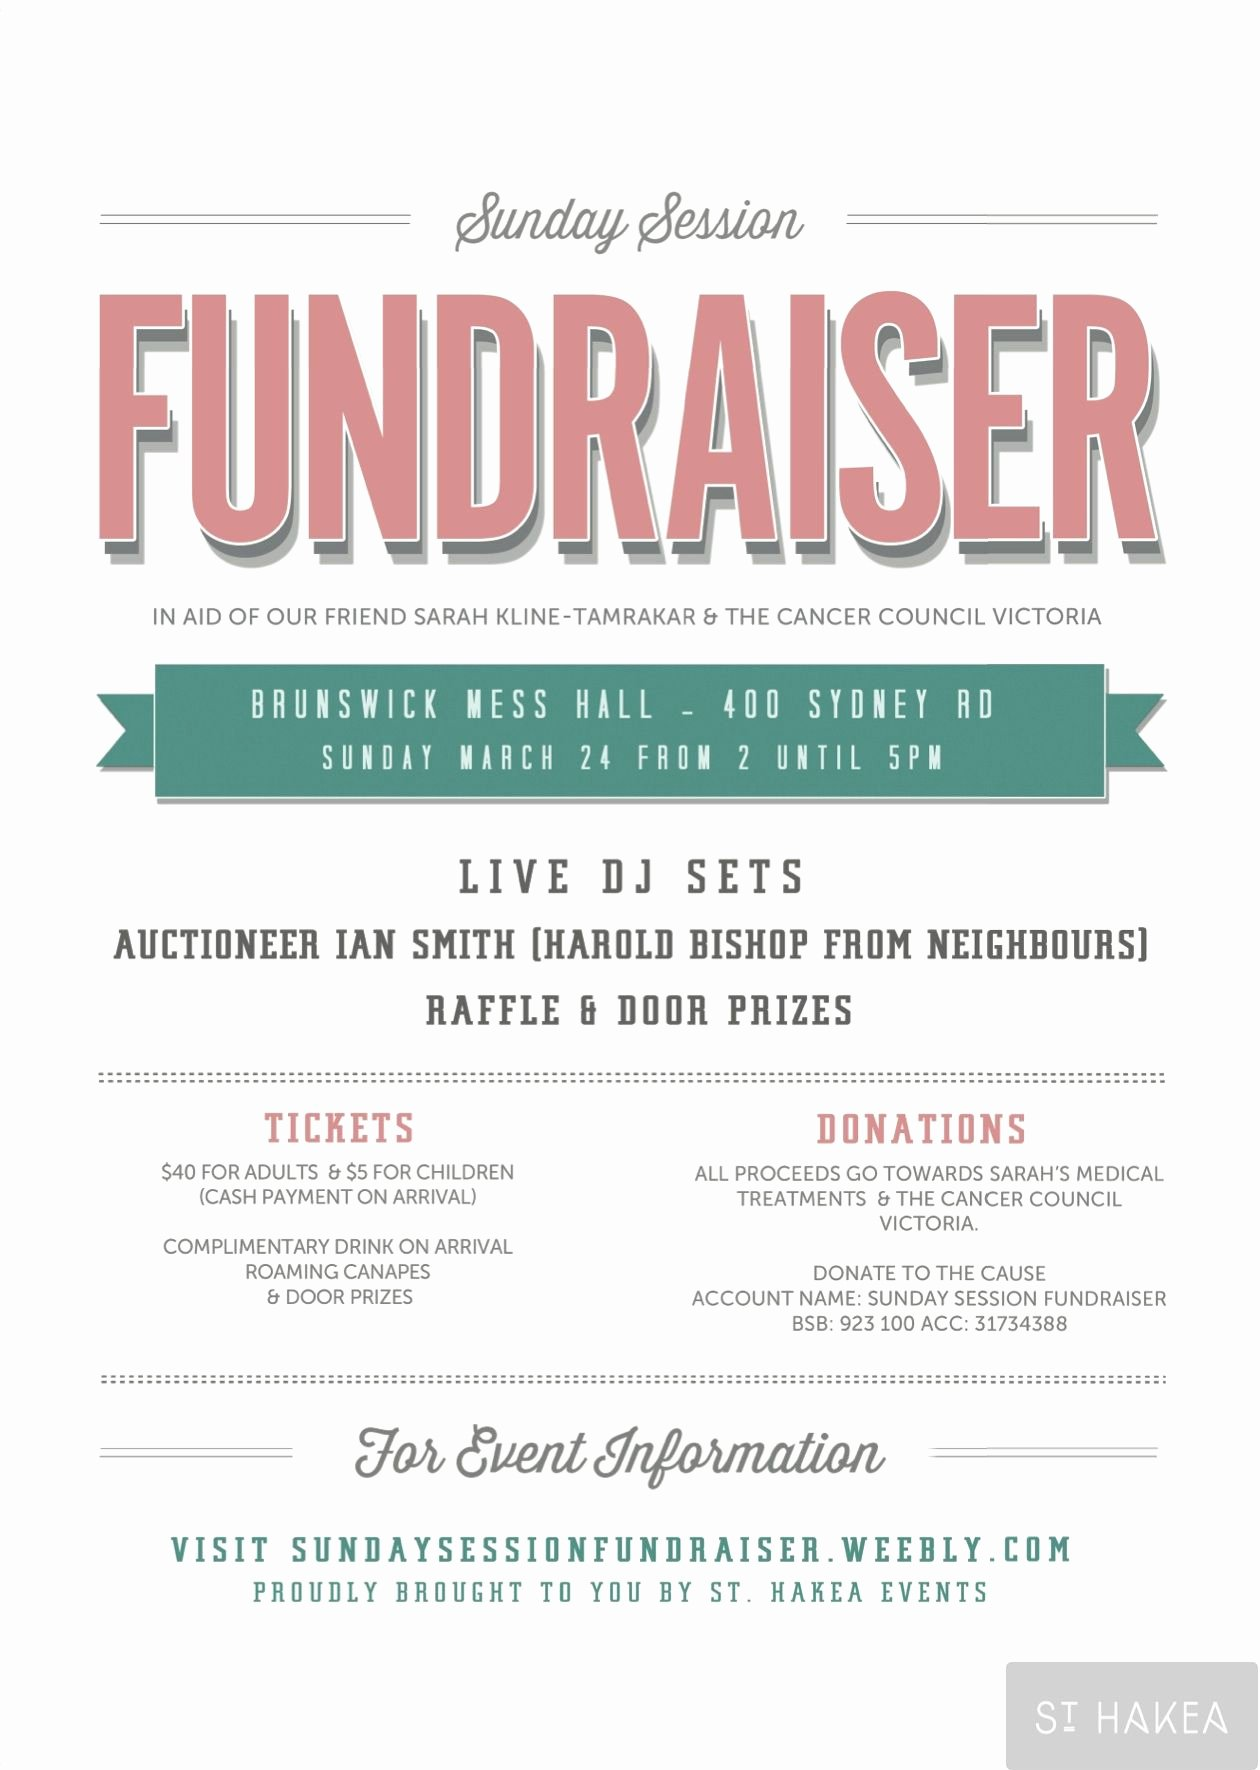 Sunday Session Fundraiser event Flyer Proudly Bought to